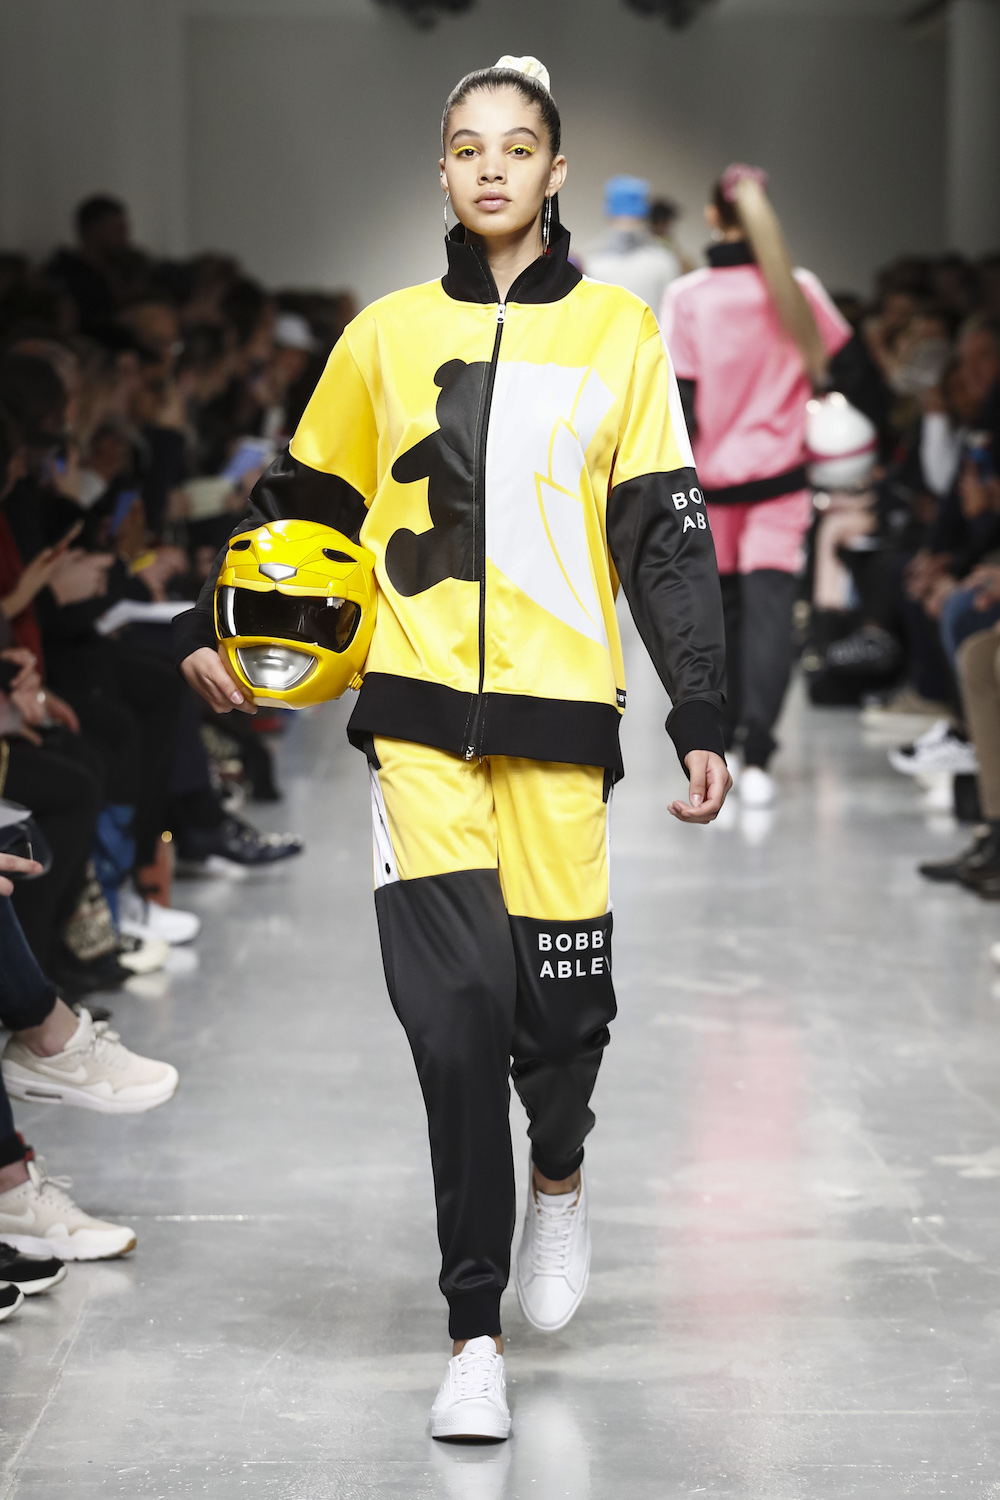 Bobby Abley Mighty Morphin Power Rangers - 1839467